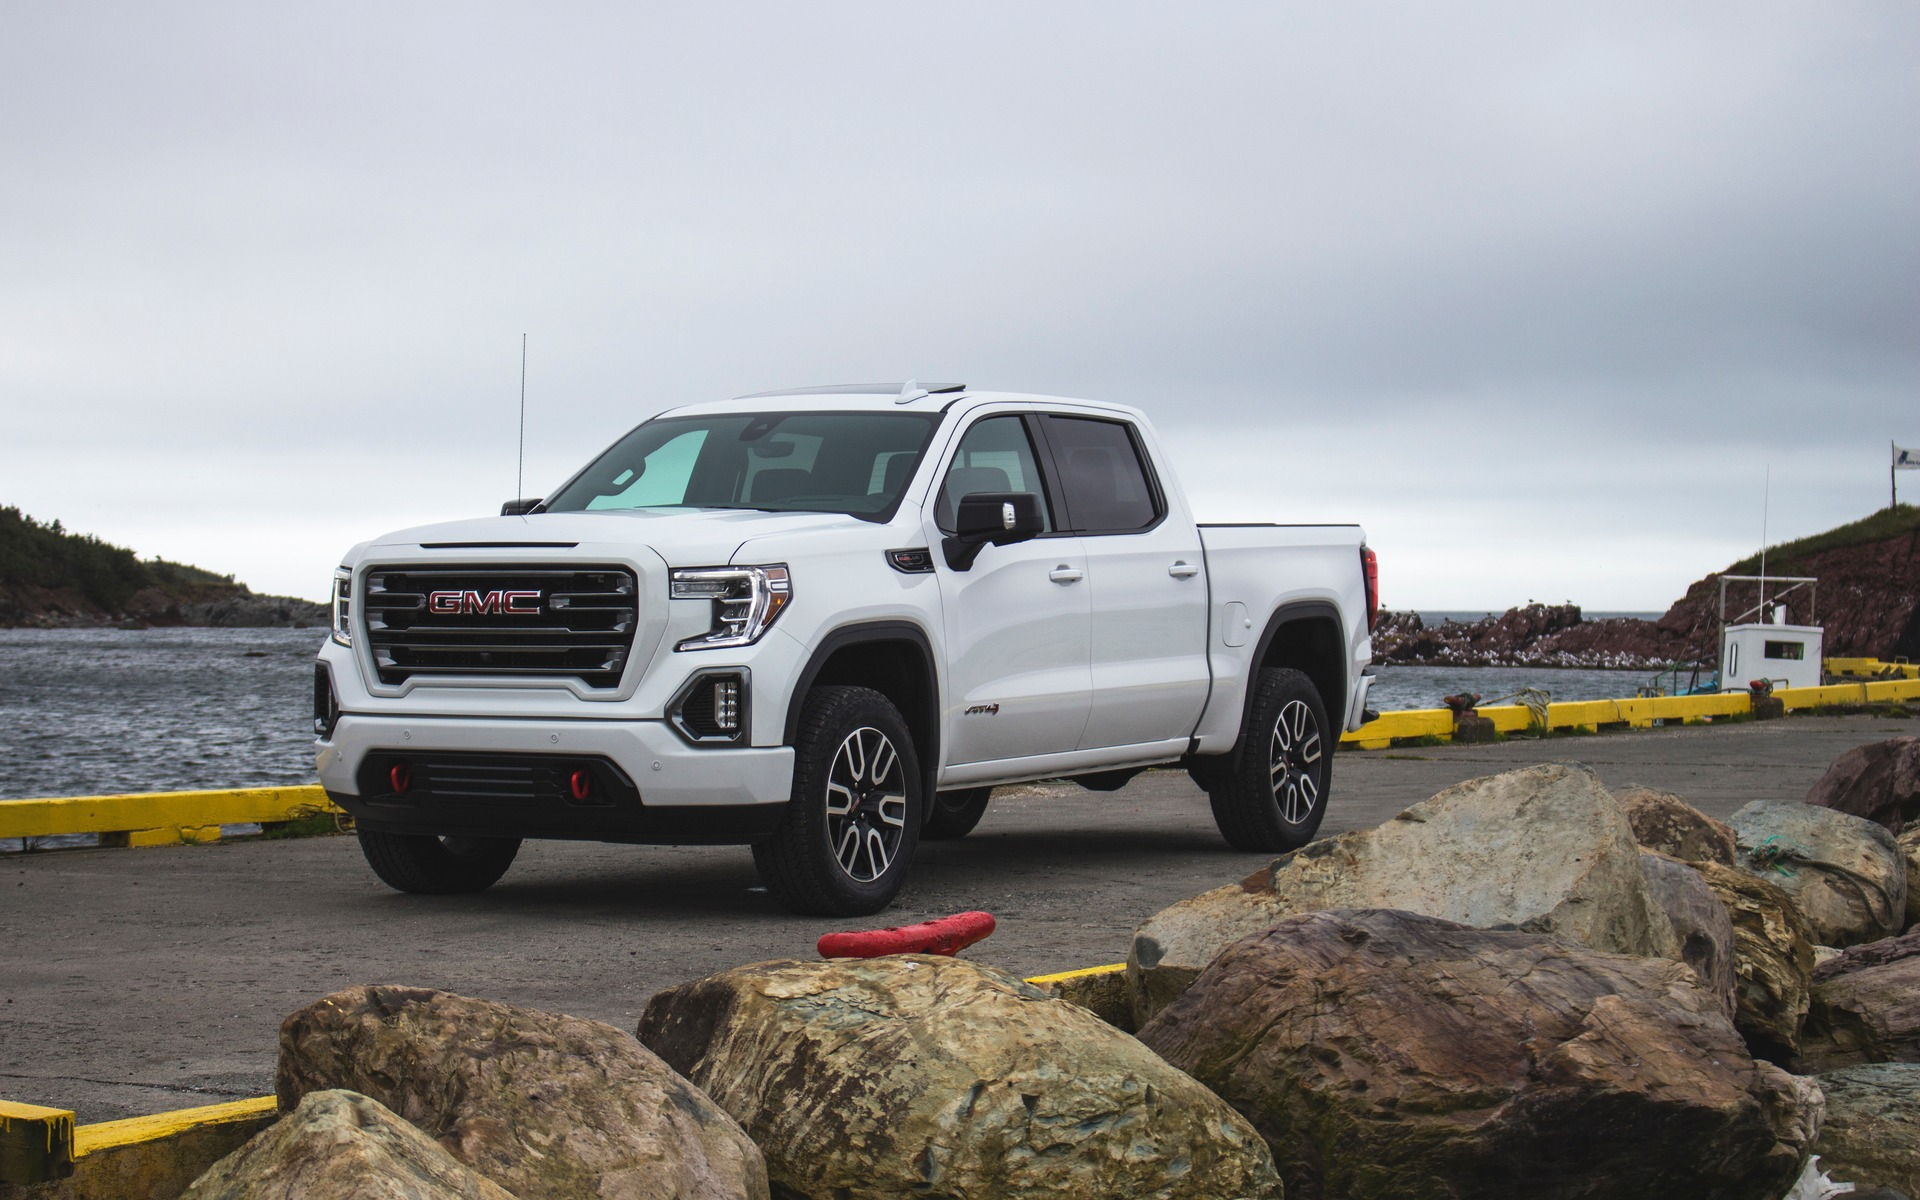 2019 Gmc Sierra 1500 Finally Different The Car Guide